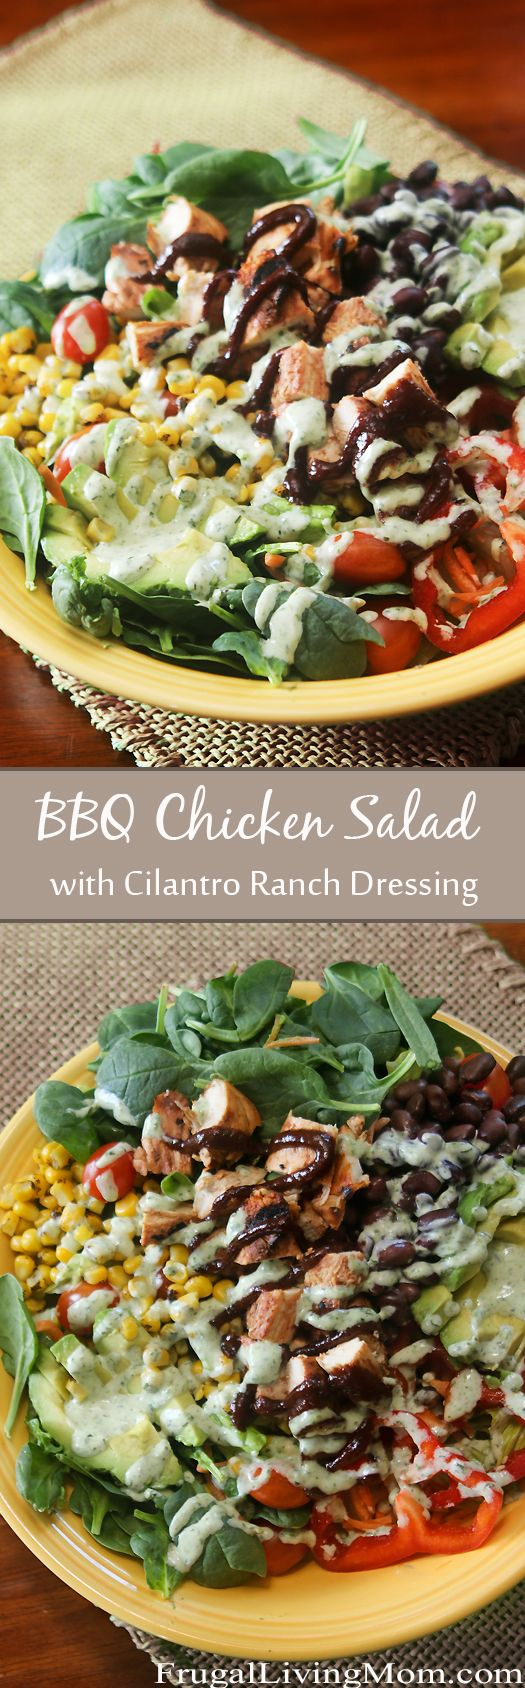 BBQ Chicken Salad with Cilantro Ranch Dressing.  A GREAT Salad for the summer!